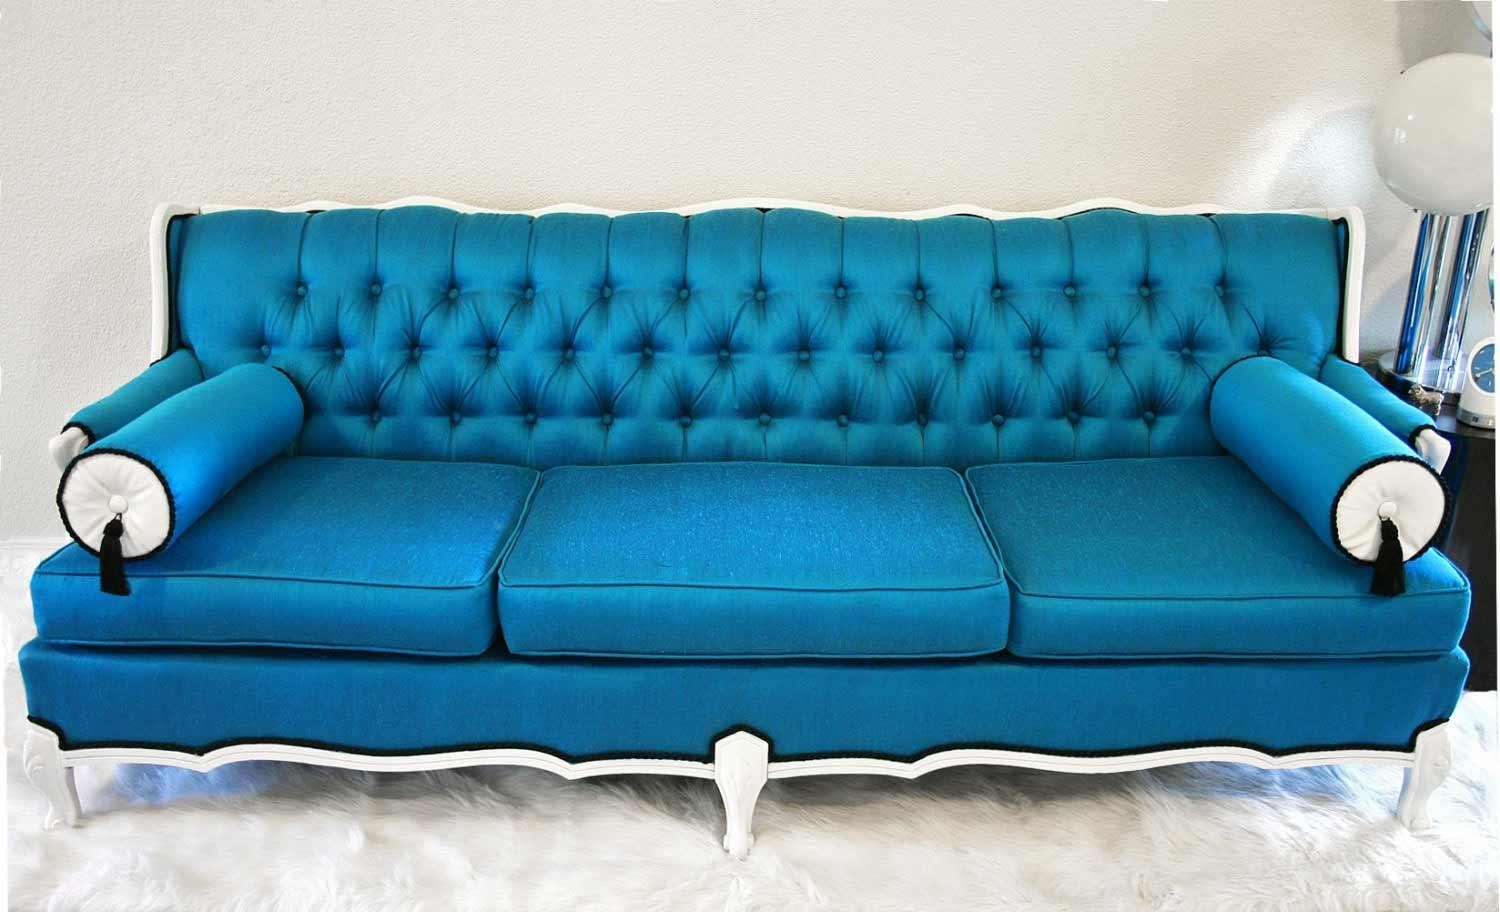 Beachside Blue Sofa. Sure Fit Pearson Stretch Sofa Slipcover (Image 3 of 20)